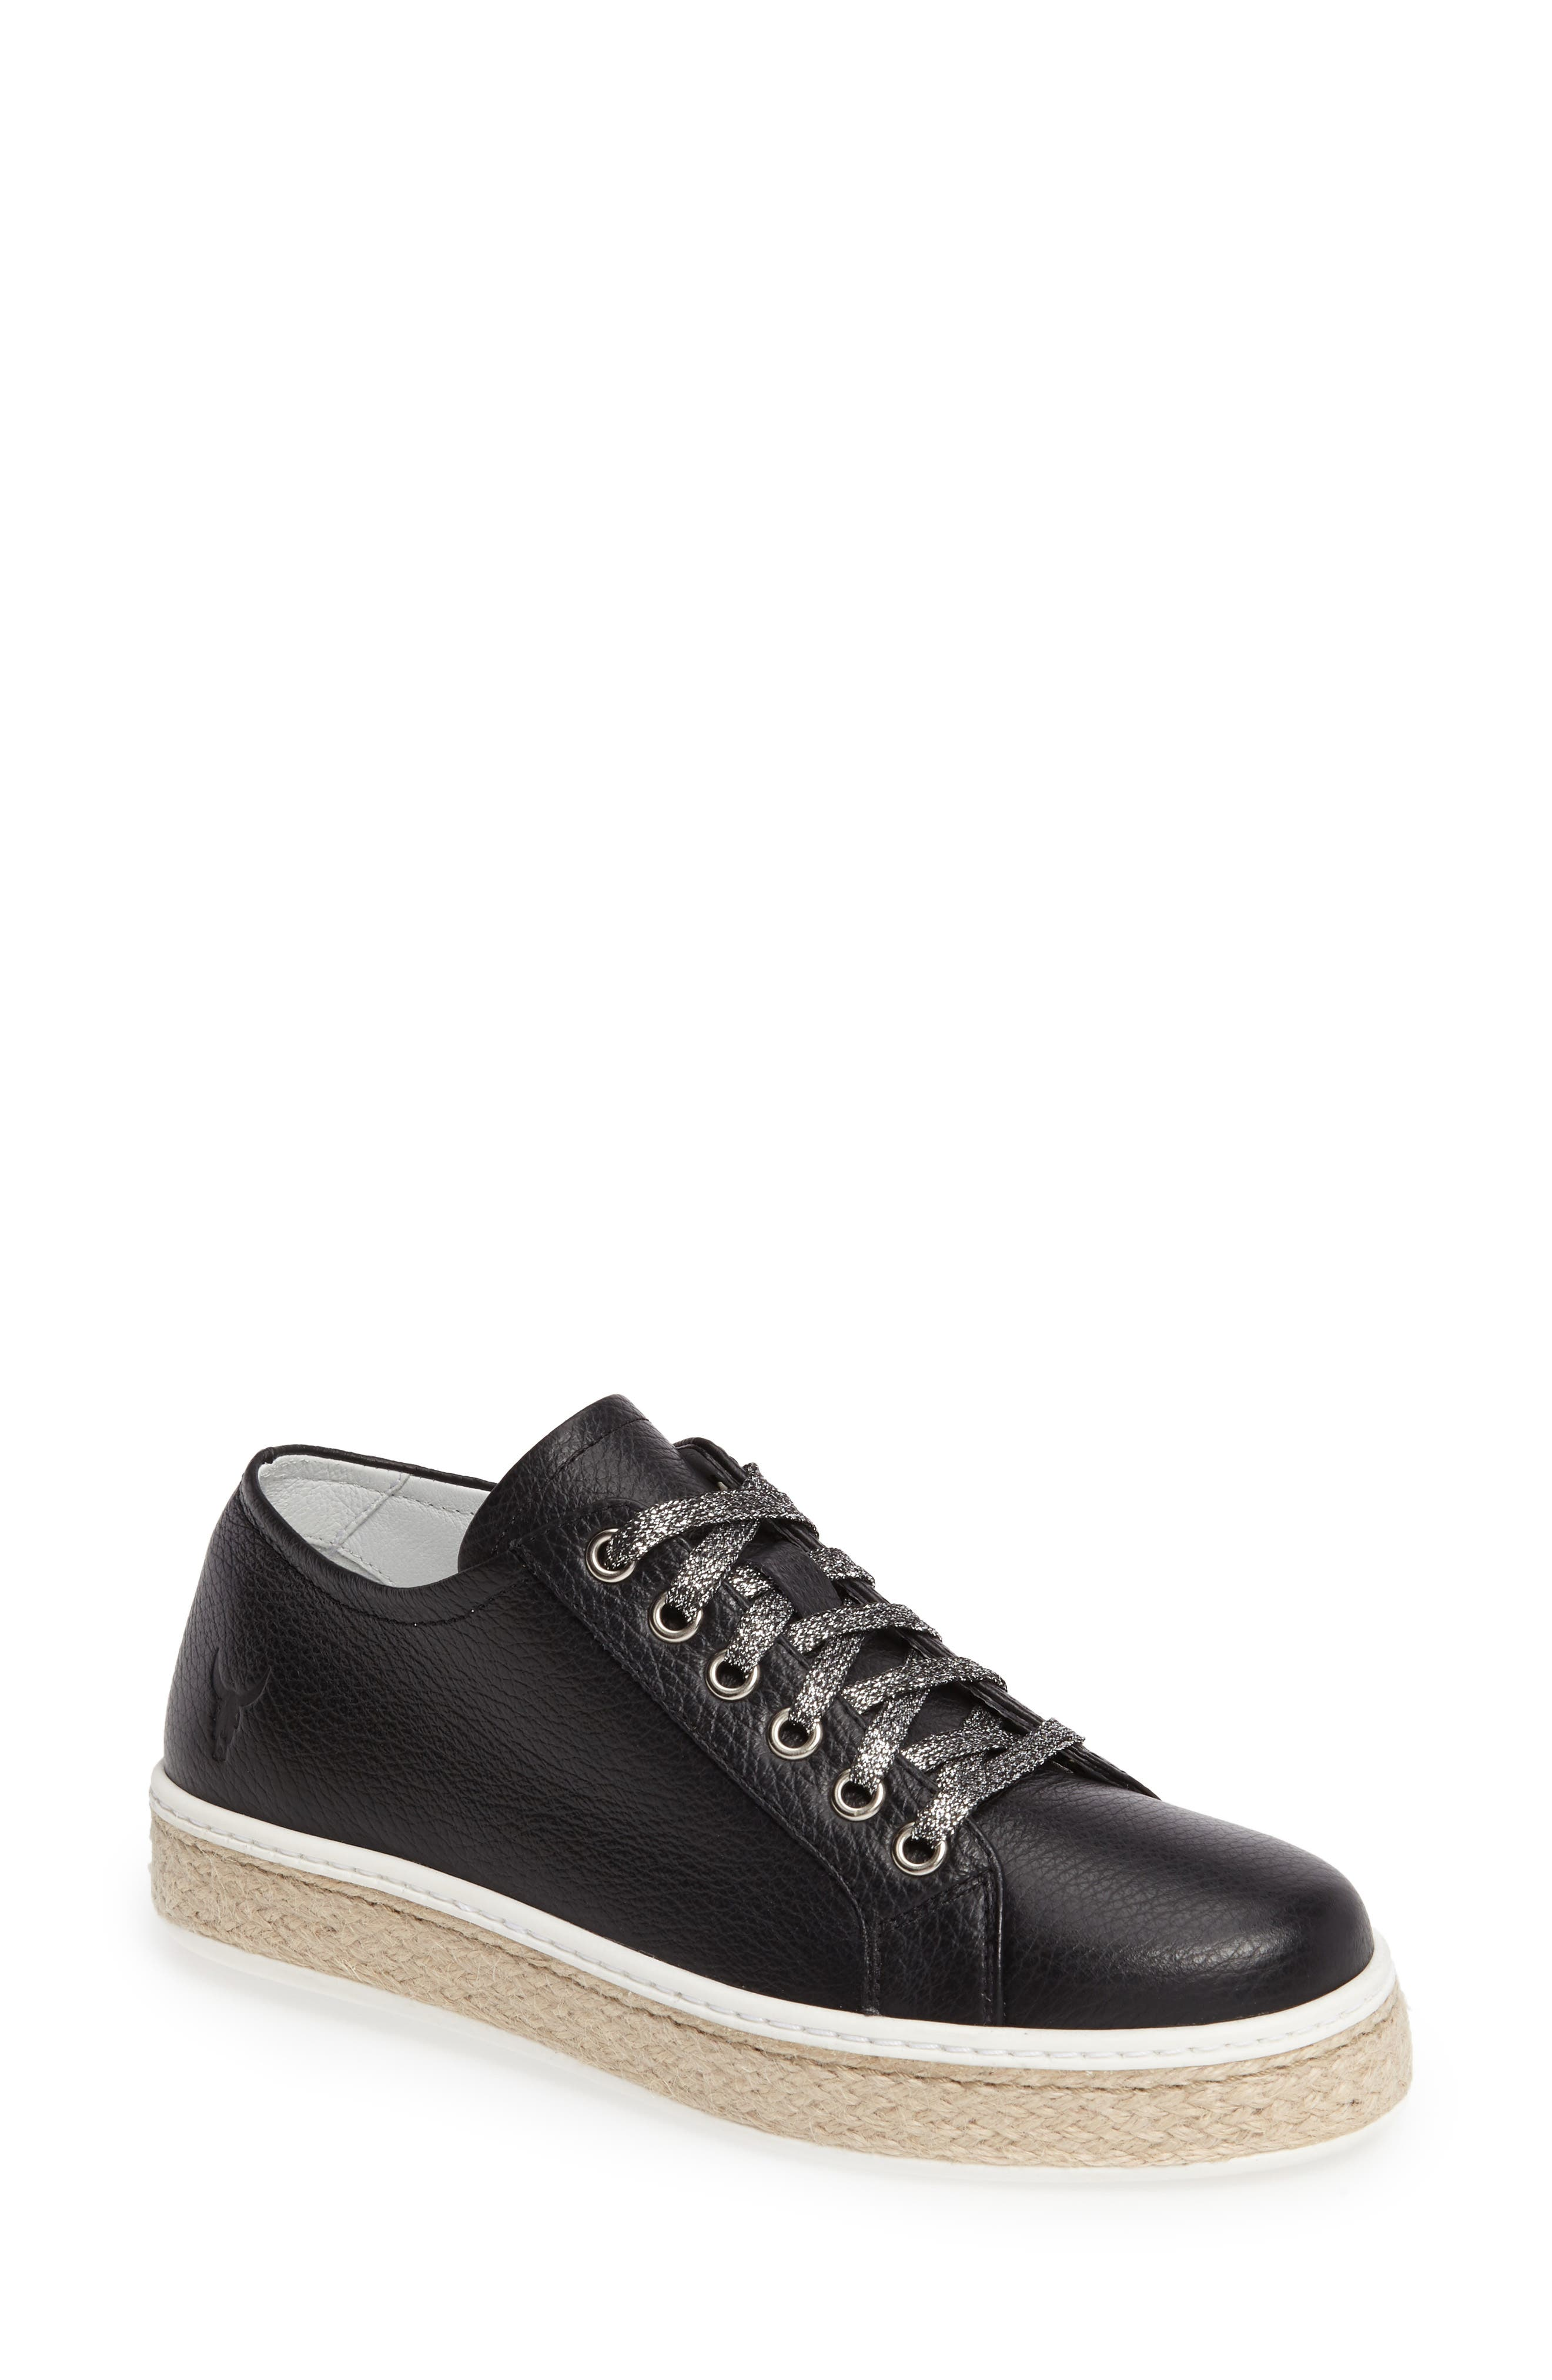 Bevany Sneaker,                         Main,                         color, BLACK LEATHER